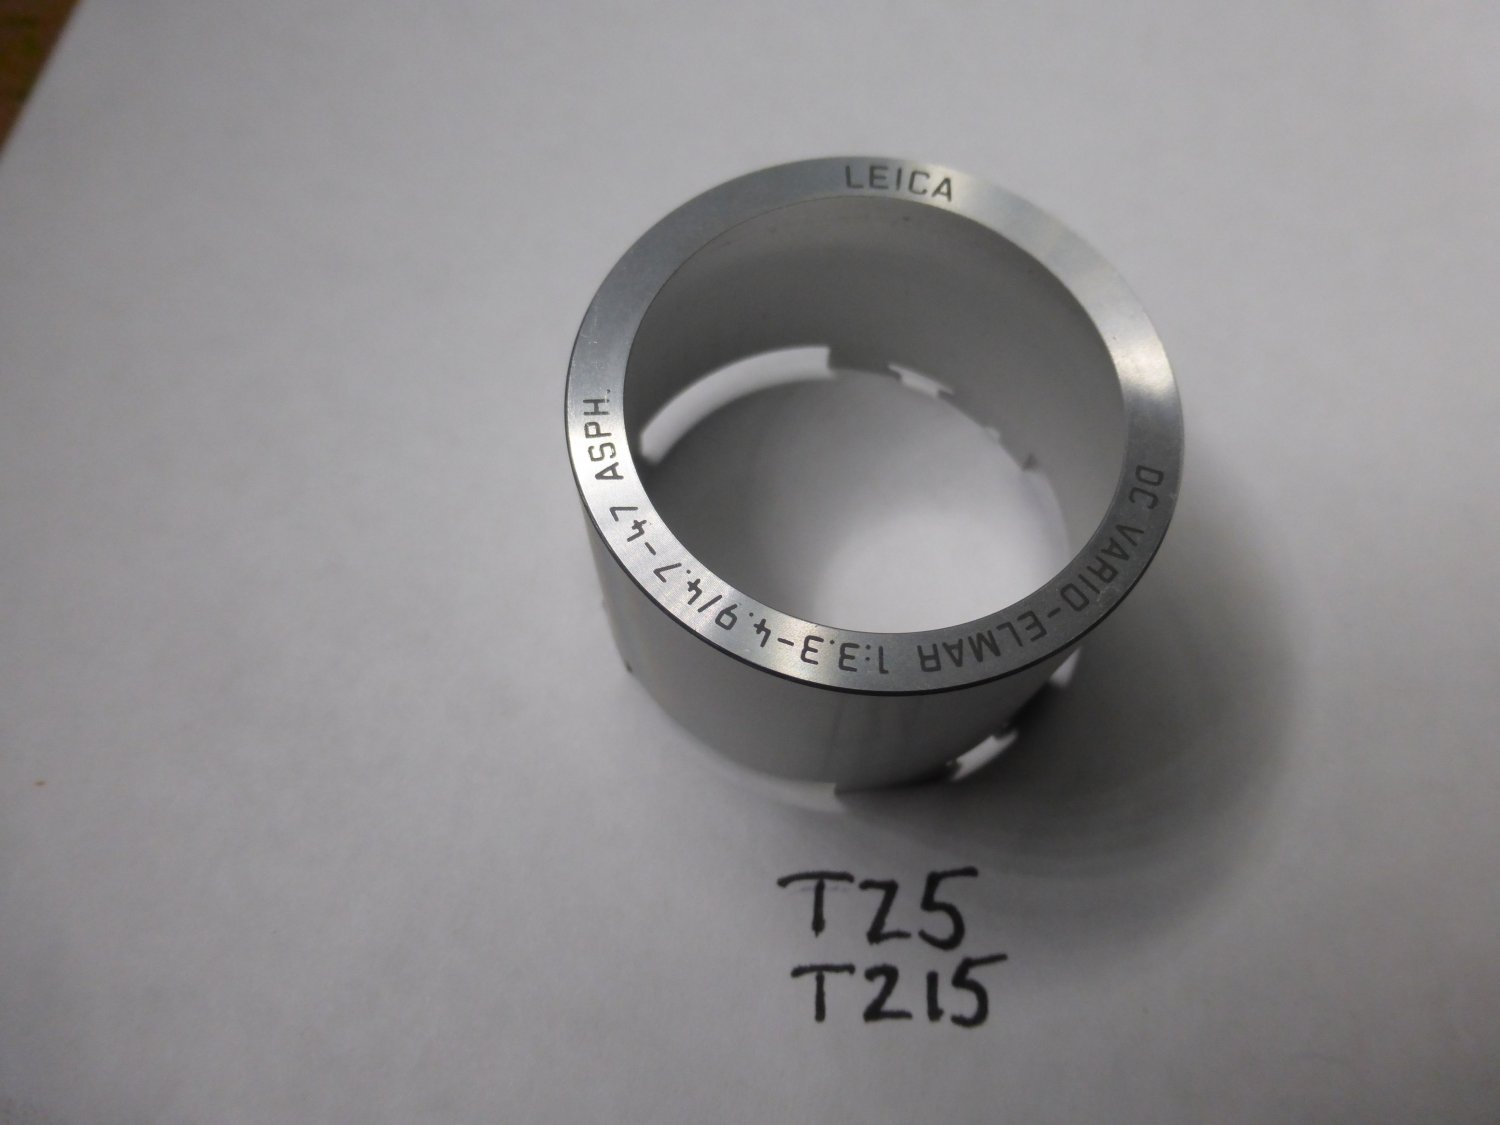 Panasonic Lumix DMC-TZ5 DMC-TZ4 DMC-TZ11 DMC-TZ15 Lens Front TUbe